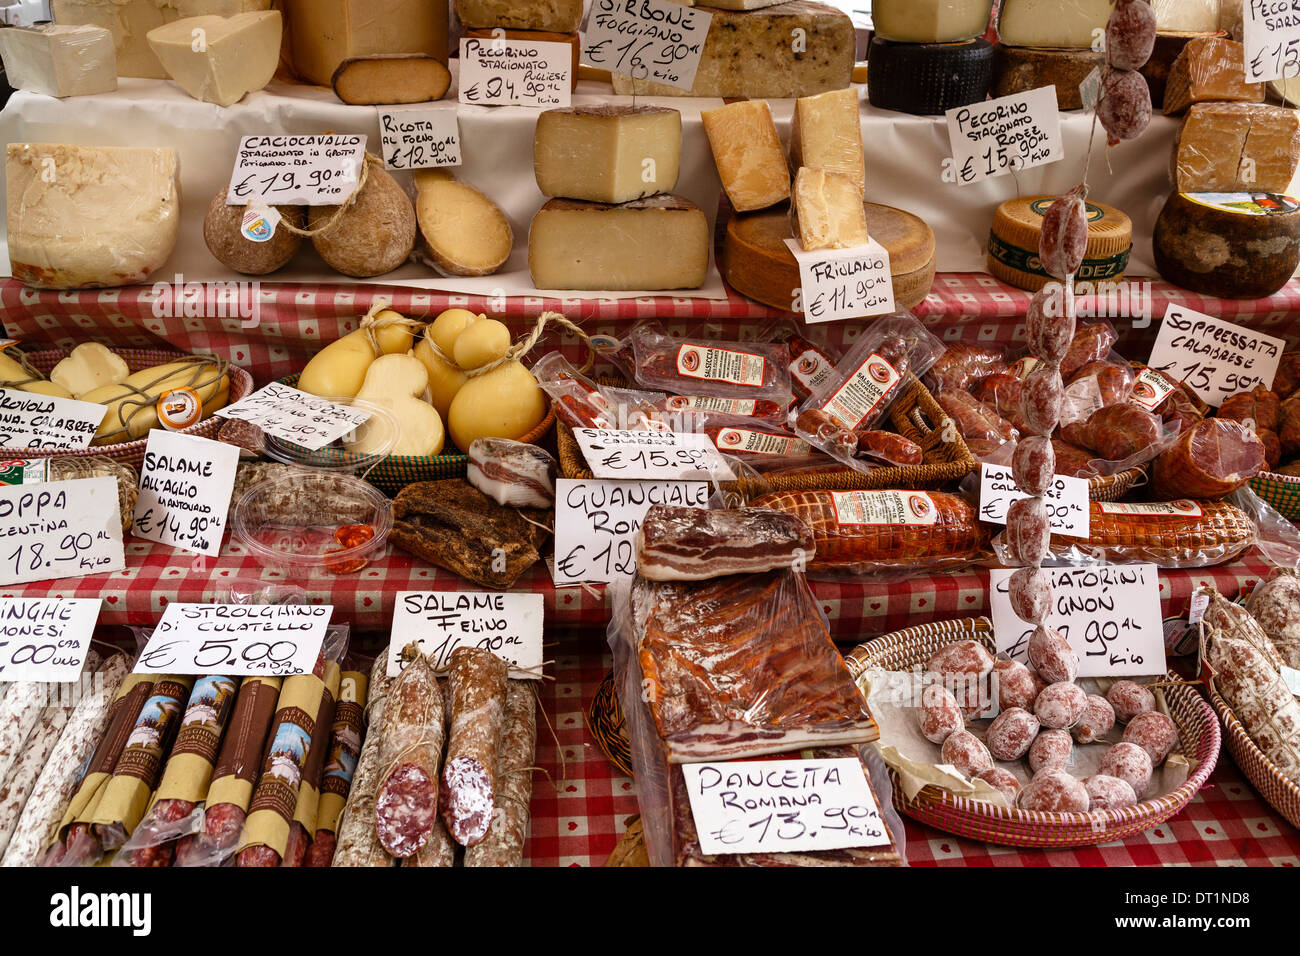 Cheese and salamis at Papiniano market, Milan, Lombardy, Italy, Europe - Stock Image